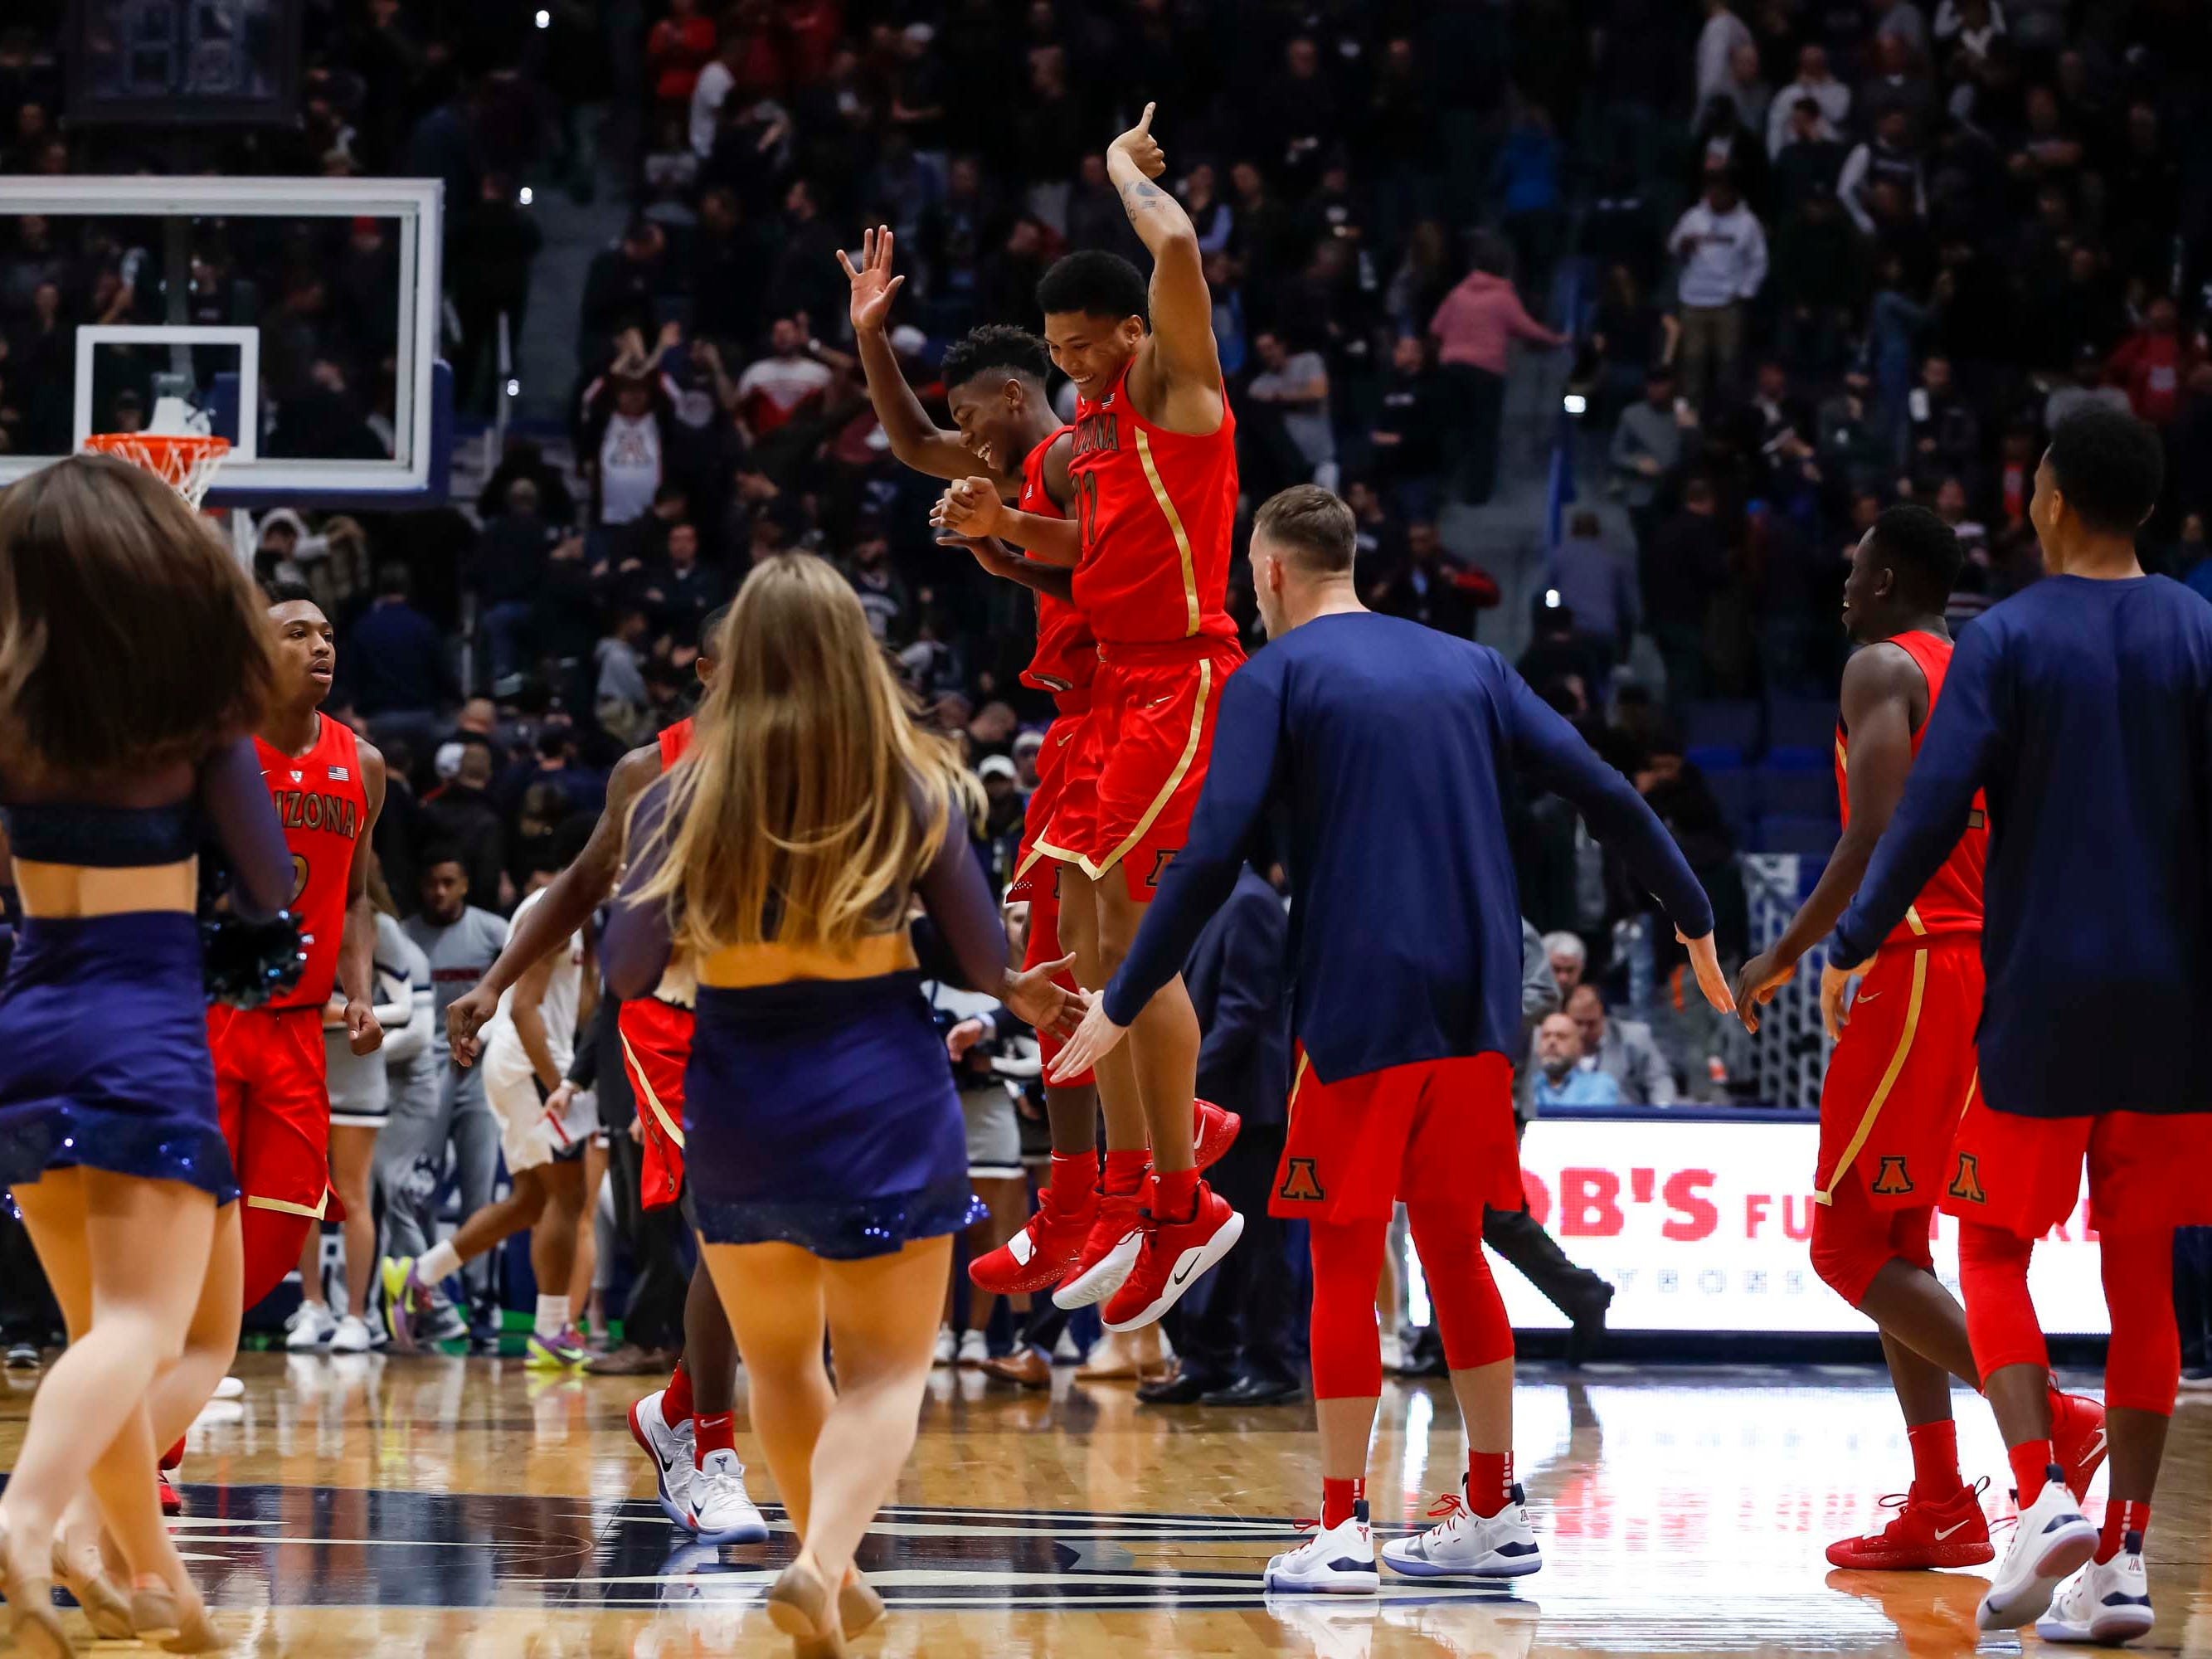 Dec 2, 2018; Storrs, CT, USA; Arizona Wildcats guard Brandon Randolph (5) and Arizona Wildcats forward Ira Lee (11) react after defeating the Connecticut Huskies at XL Center. Arizona defeated UConn 76-72. Mandatory Credit: David Butler II-USA TODAY Sports